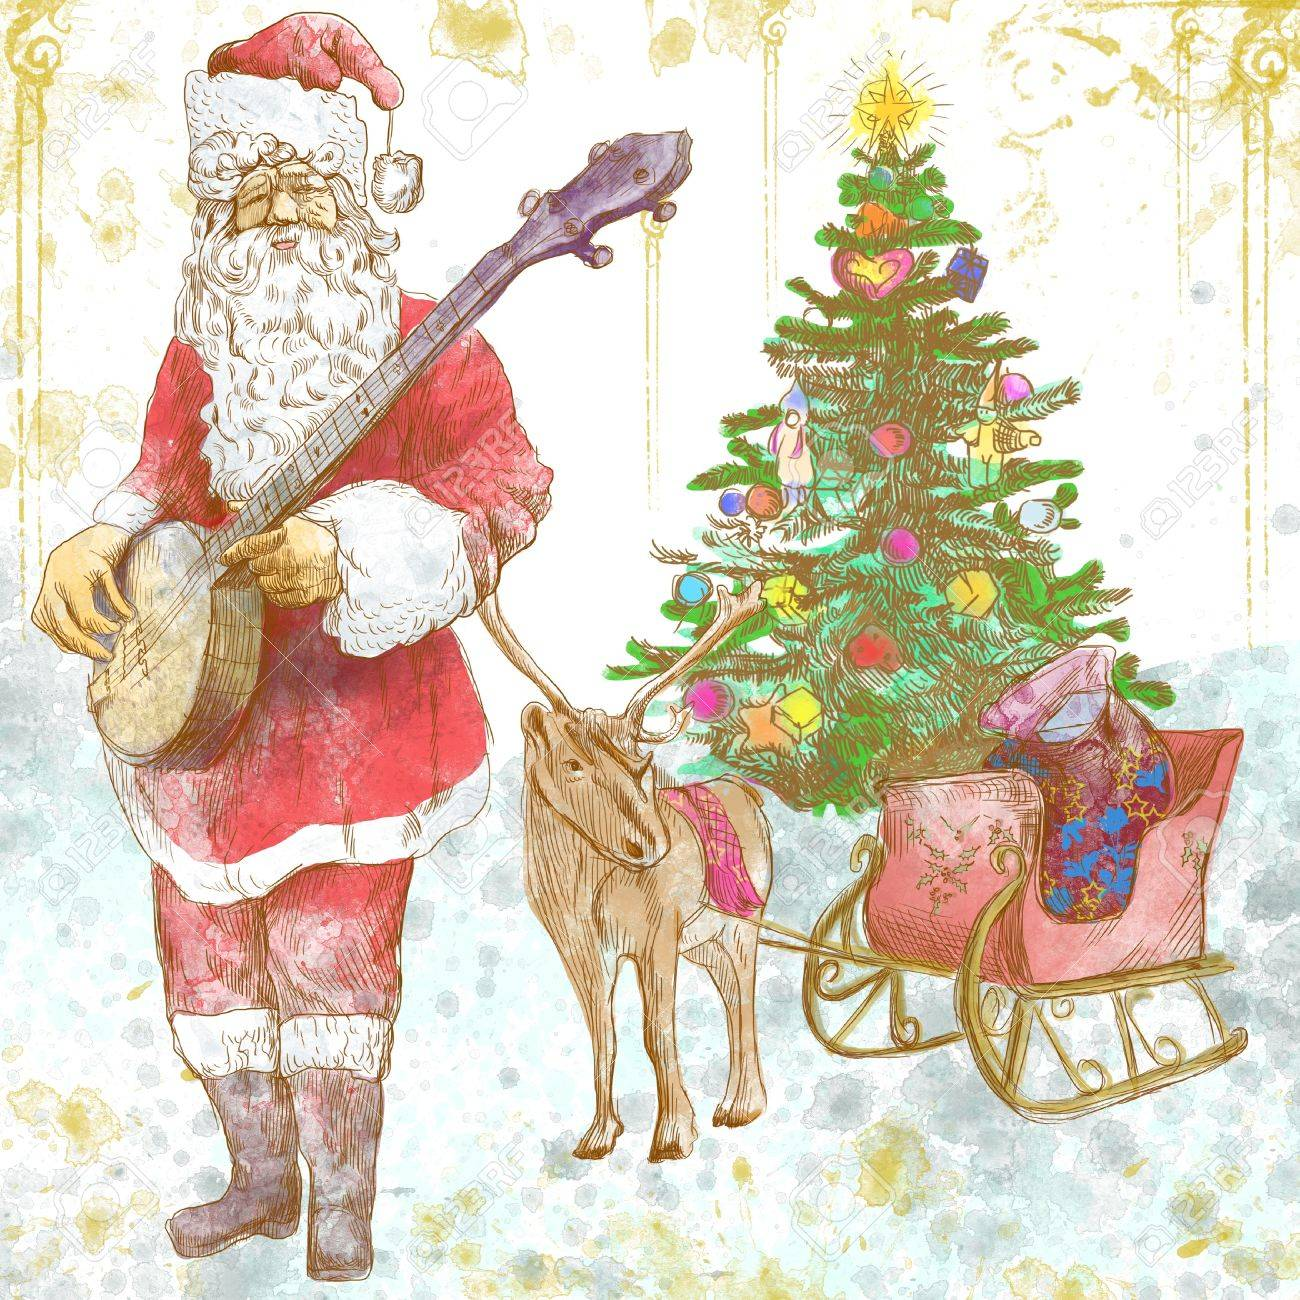 Play Christmas Music.Santa Claus Musician He Goes To Play Christmas Carols On The